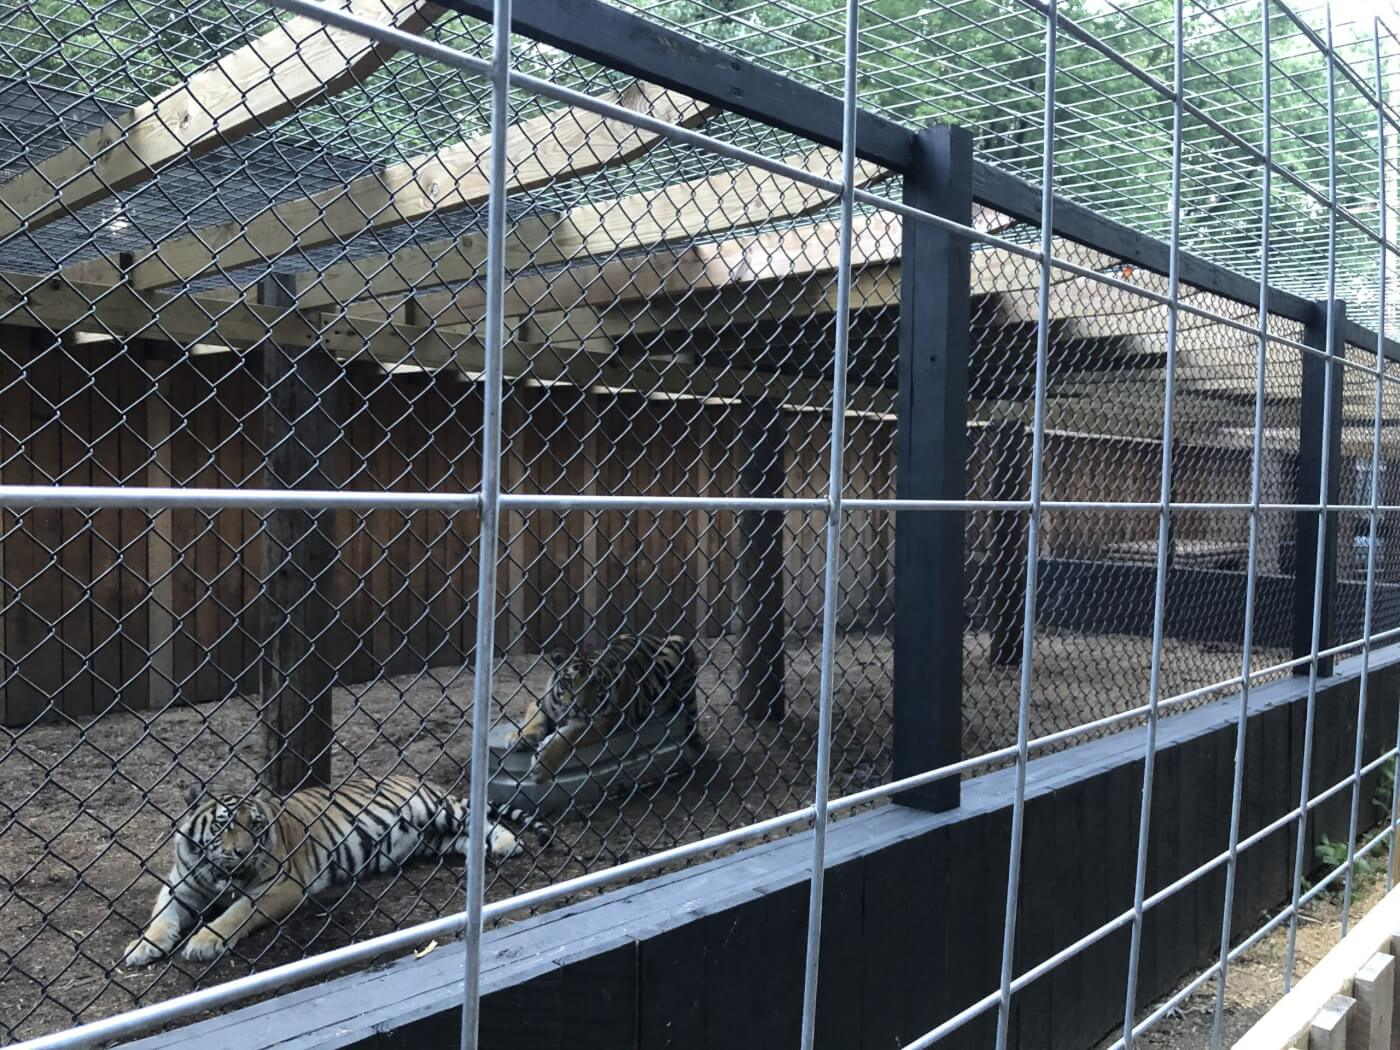 tigers Lily and Tony in enclosure at walnut prairie wildside